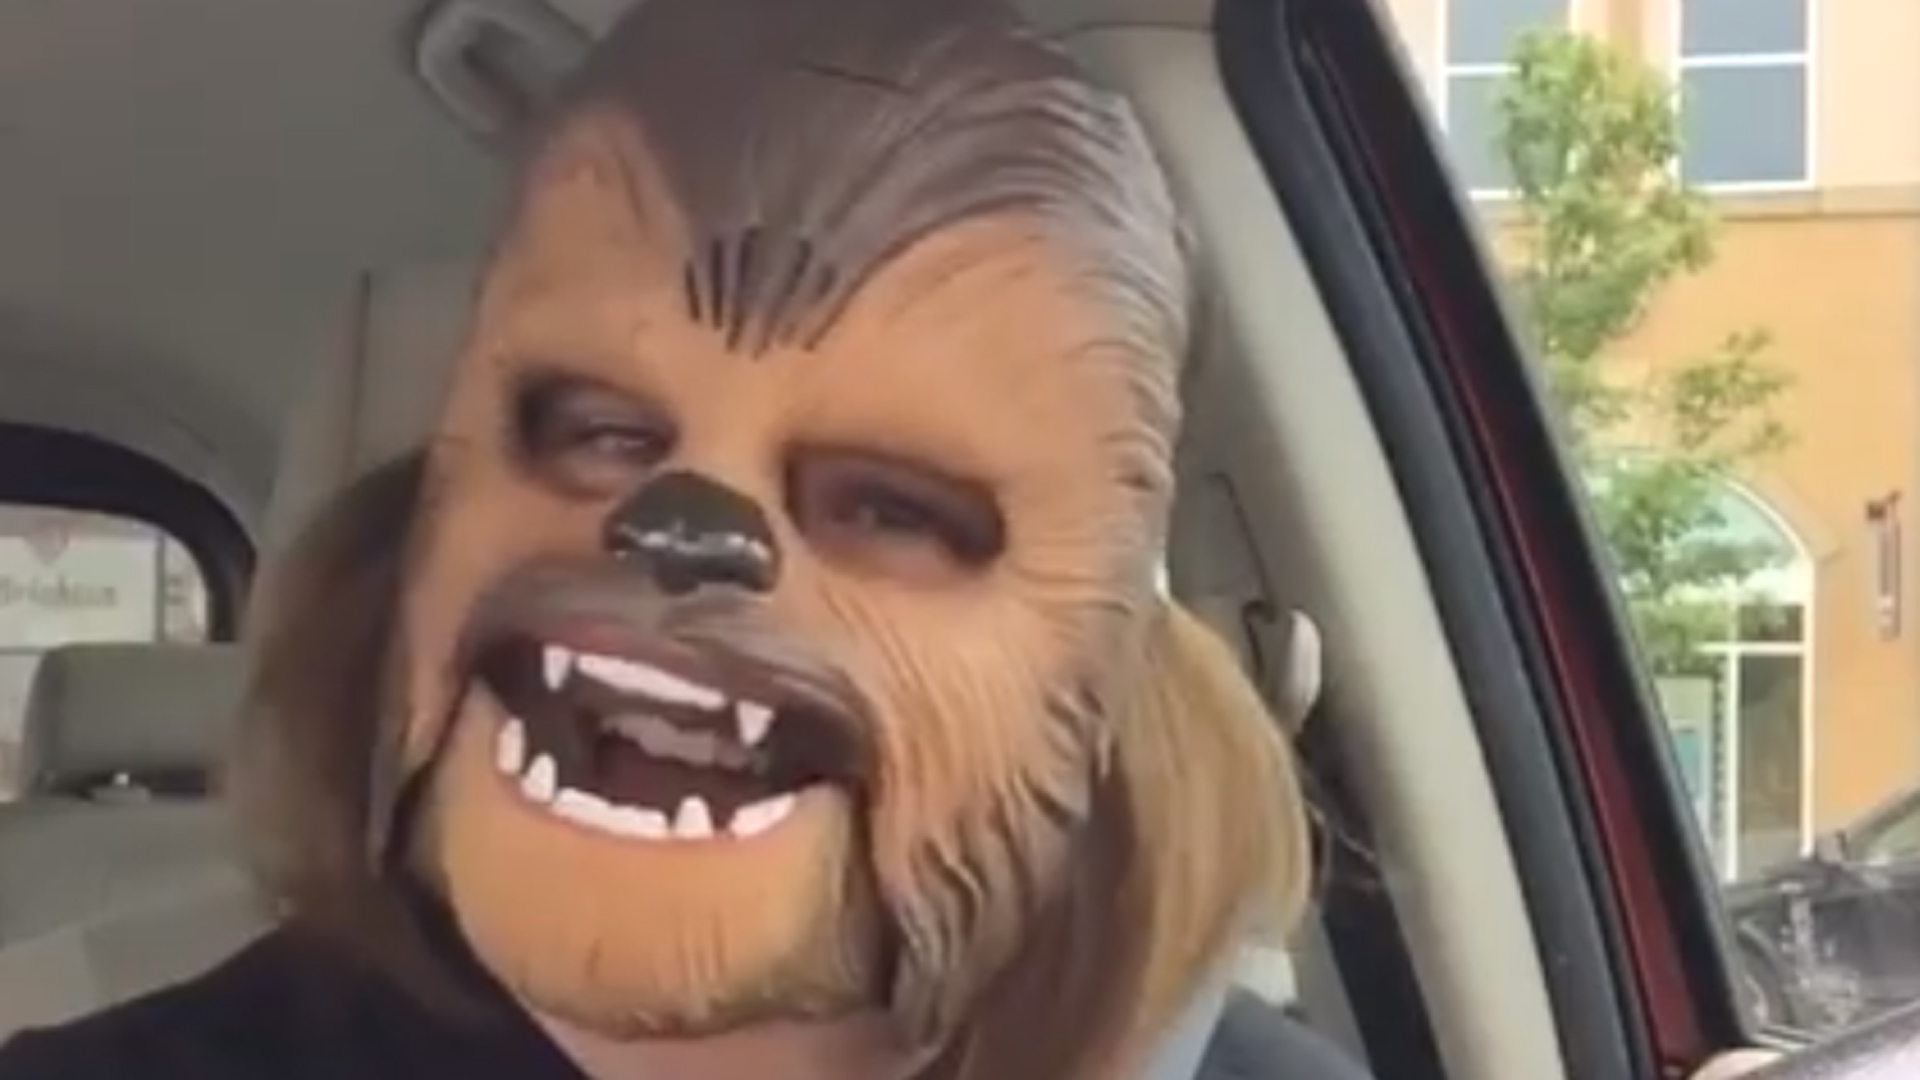 How a Chewbacca mask helped break the internet